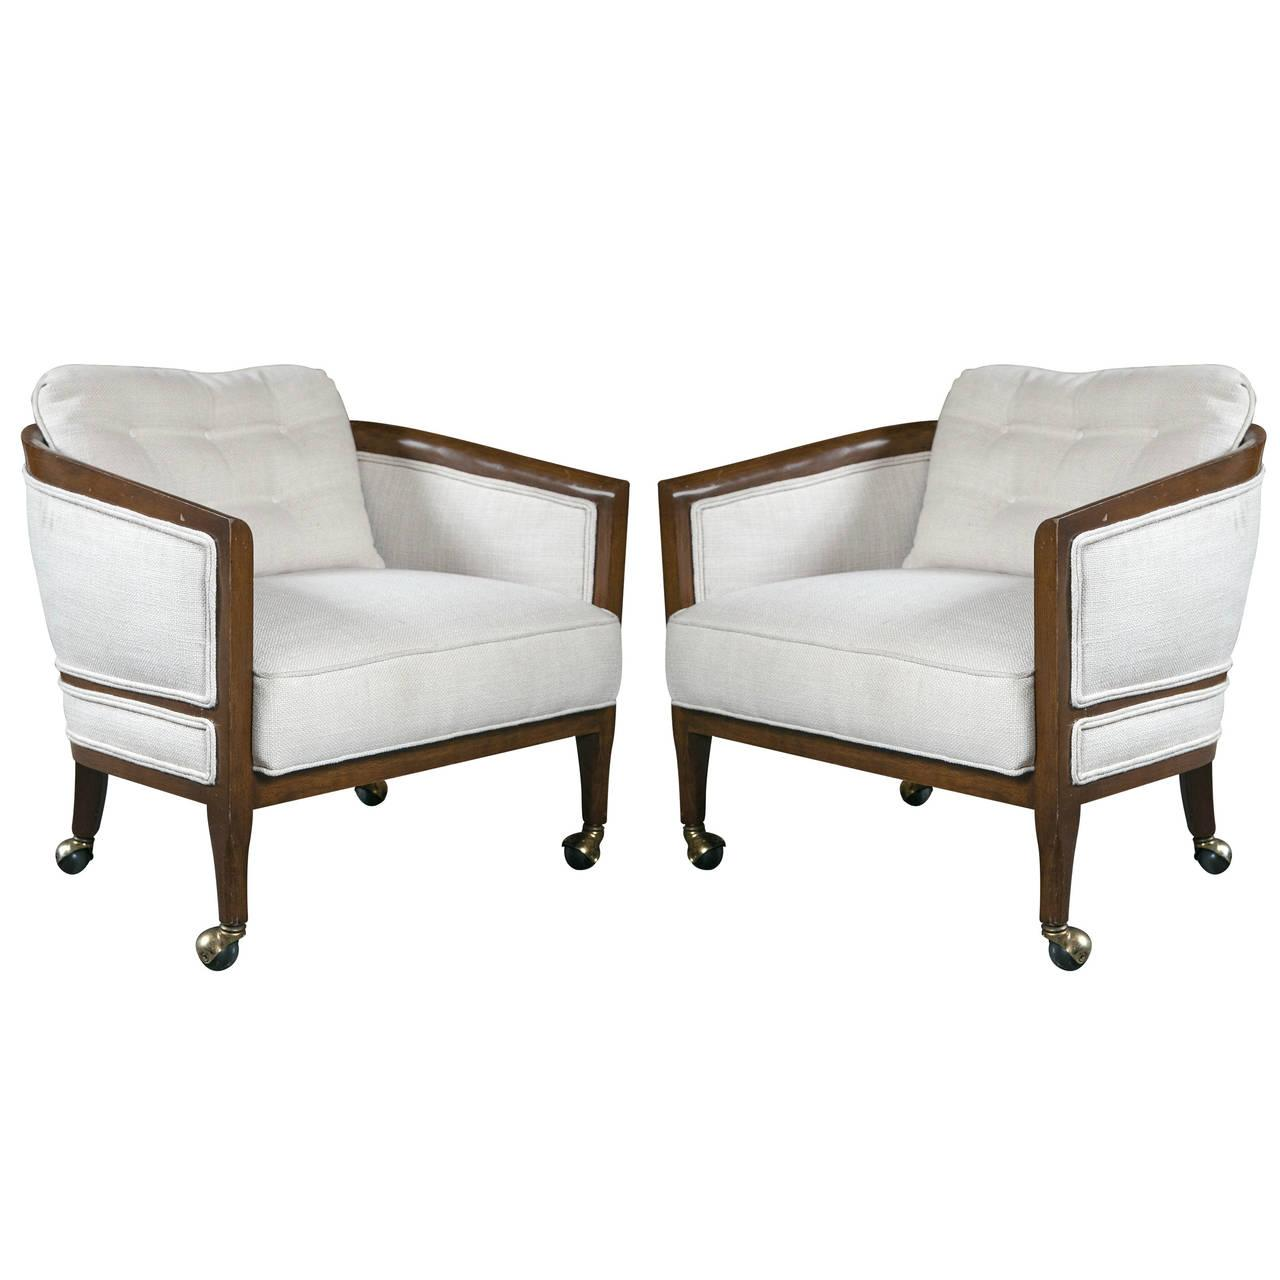 Mid Century Club Chair Mid Century Club Chairs On Casters A Pair Chairish